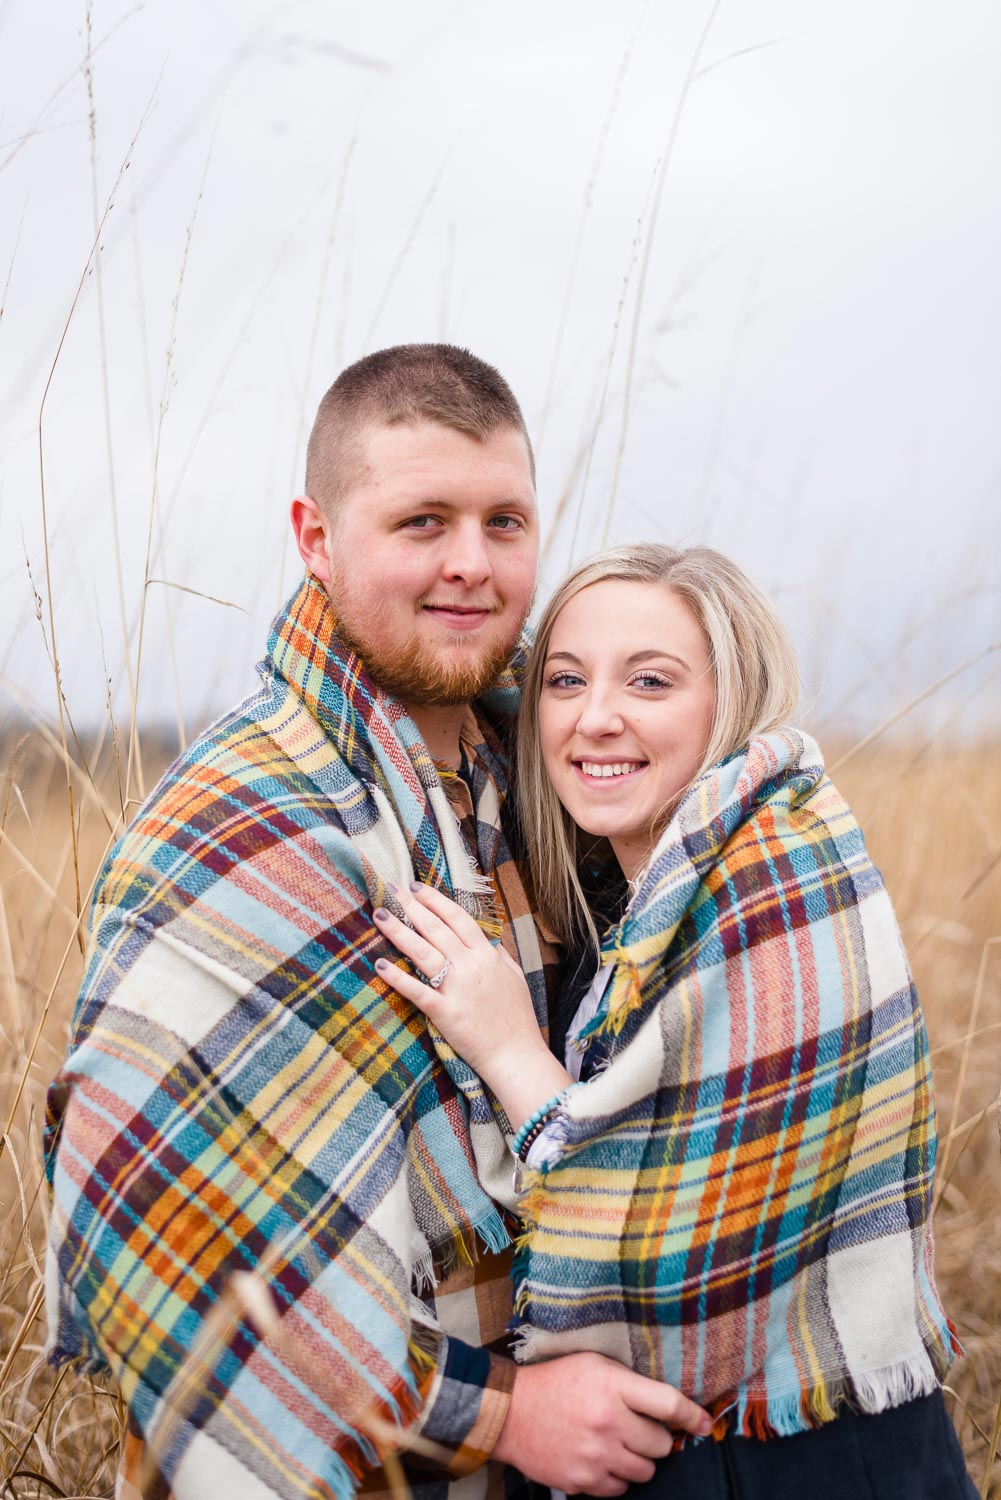 blanket scarf in plaid greens and yellows and white wrapped around couple on cold December day